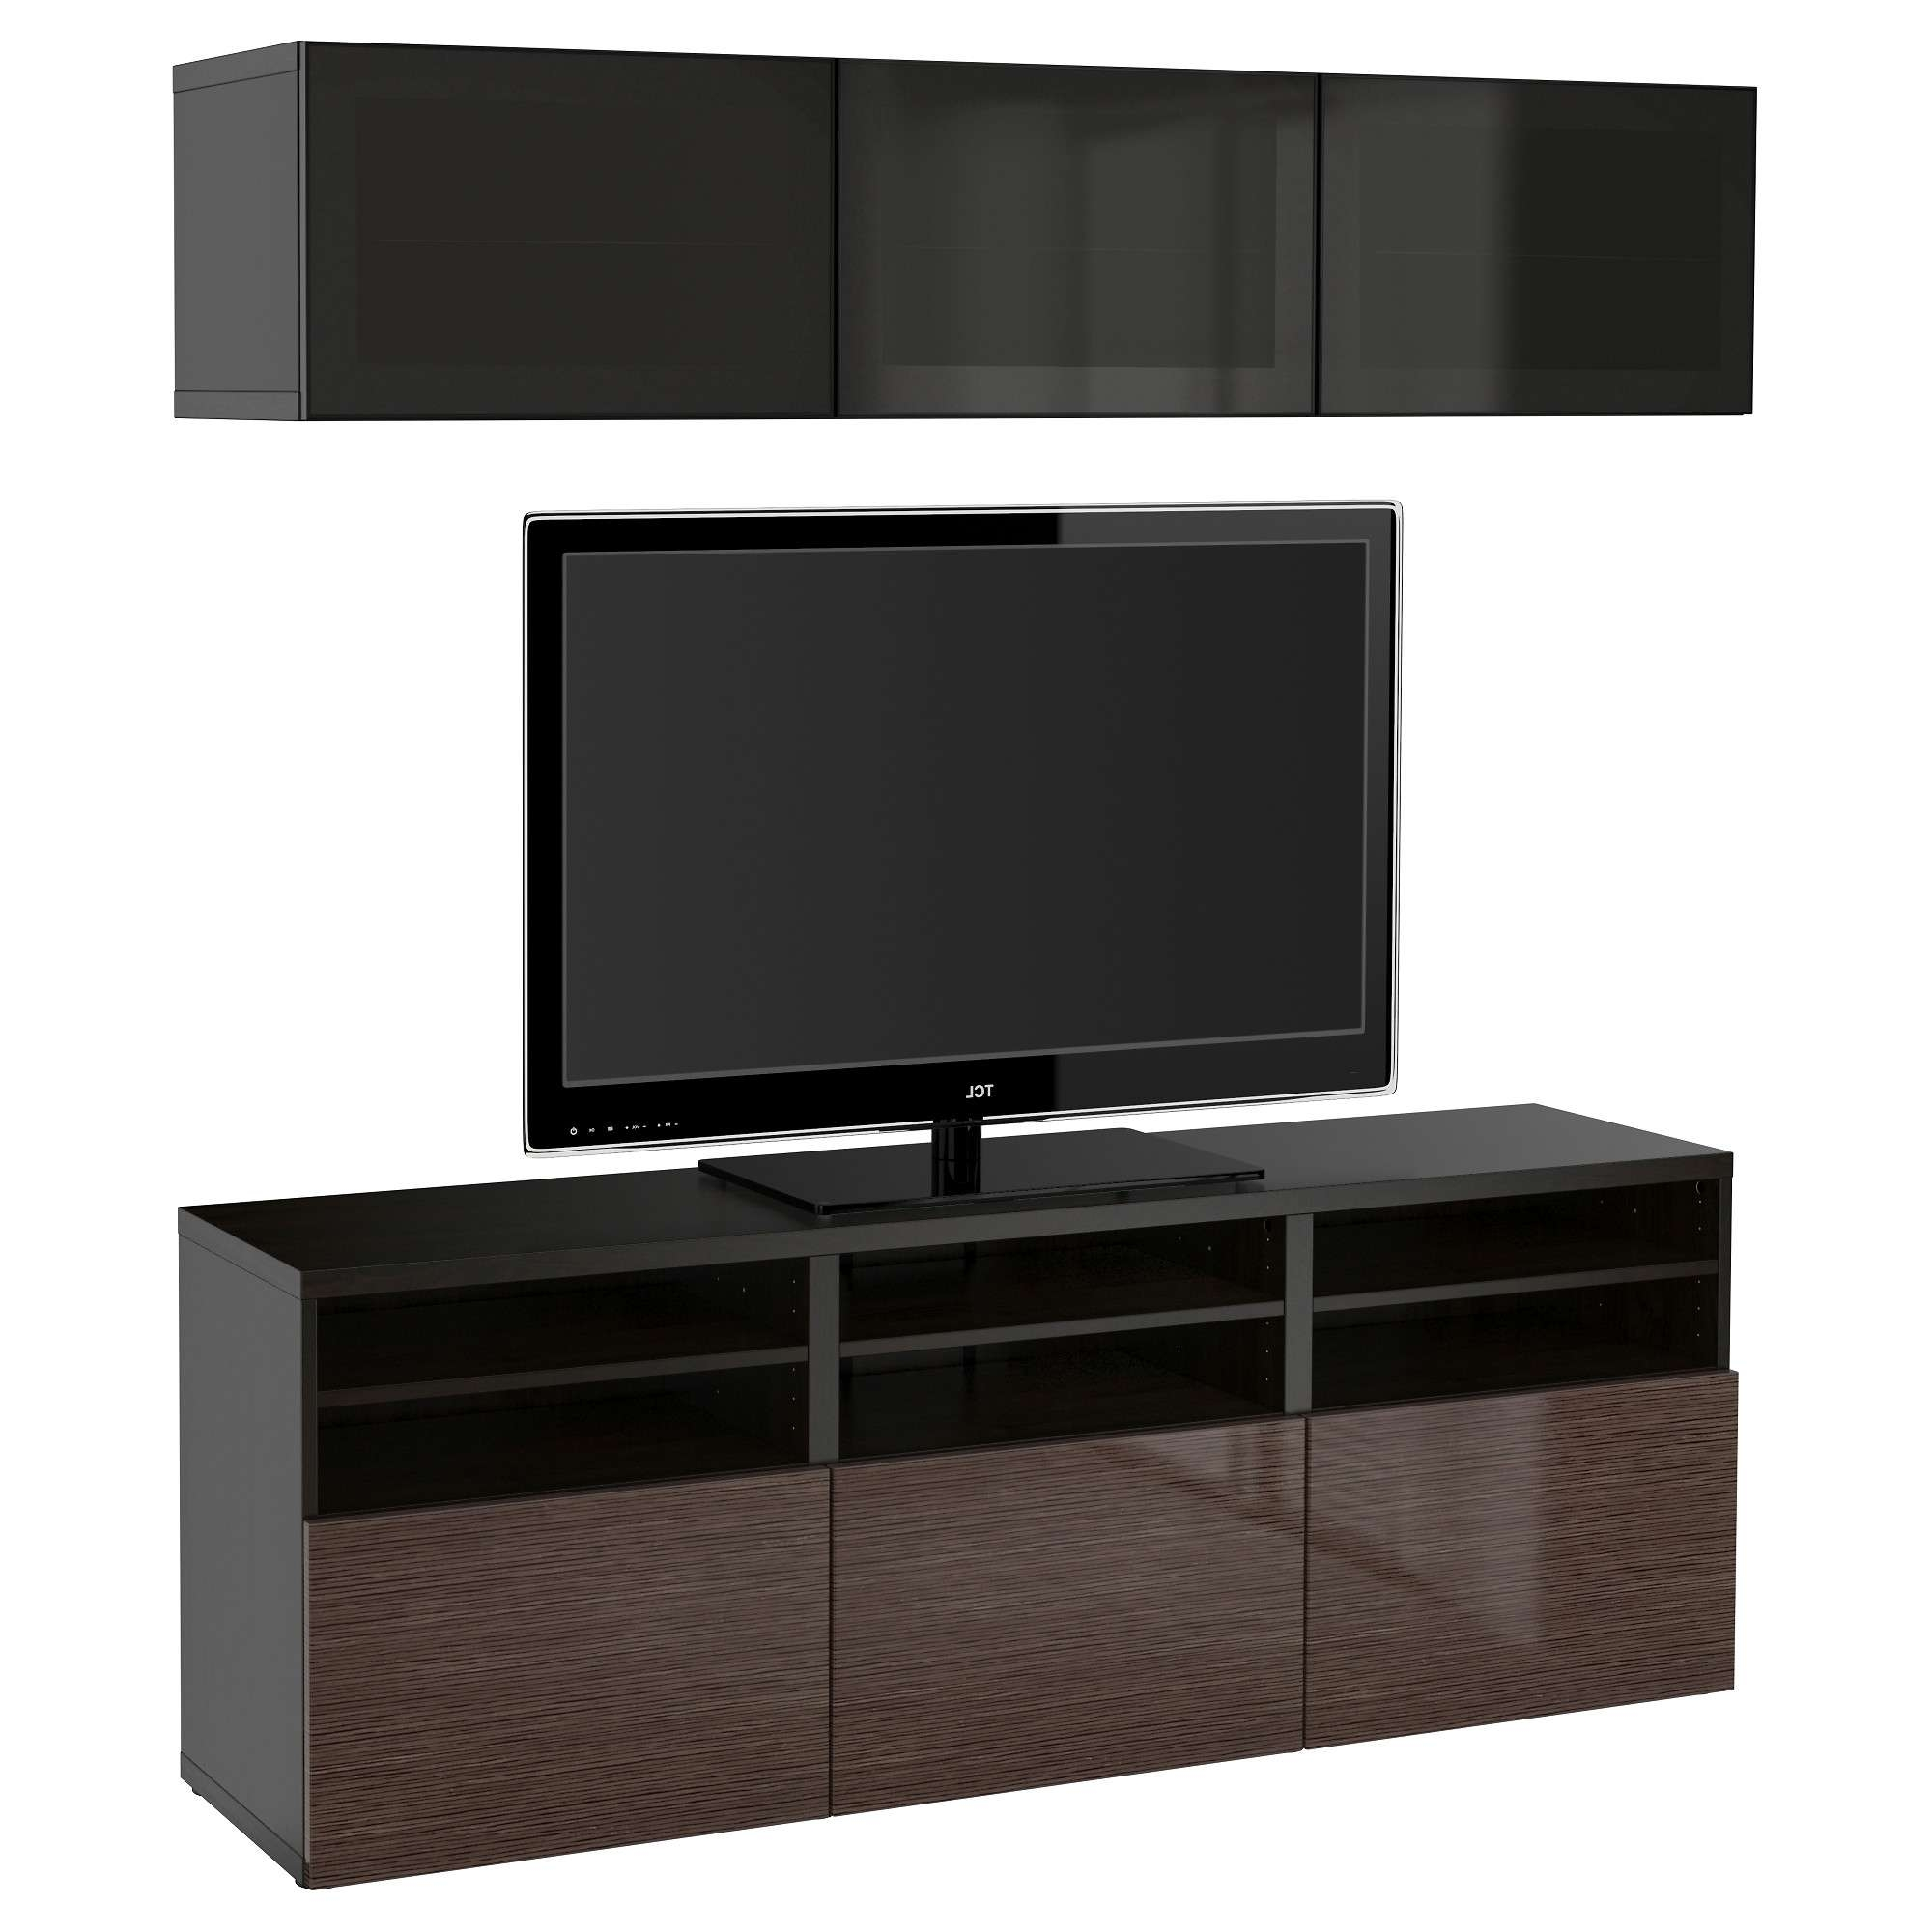 Bestå Tv Storage Combination/glass Doors Black Brown/selsviken Throughout Black Tv Stands With Glass Doors (View 1 of 15)